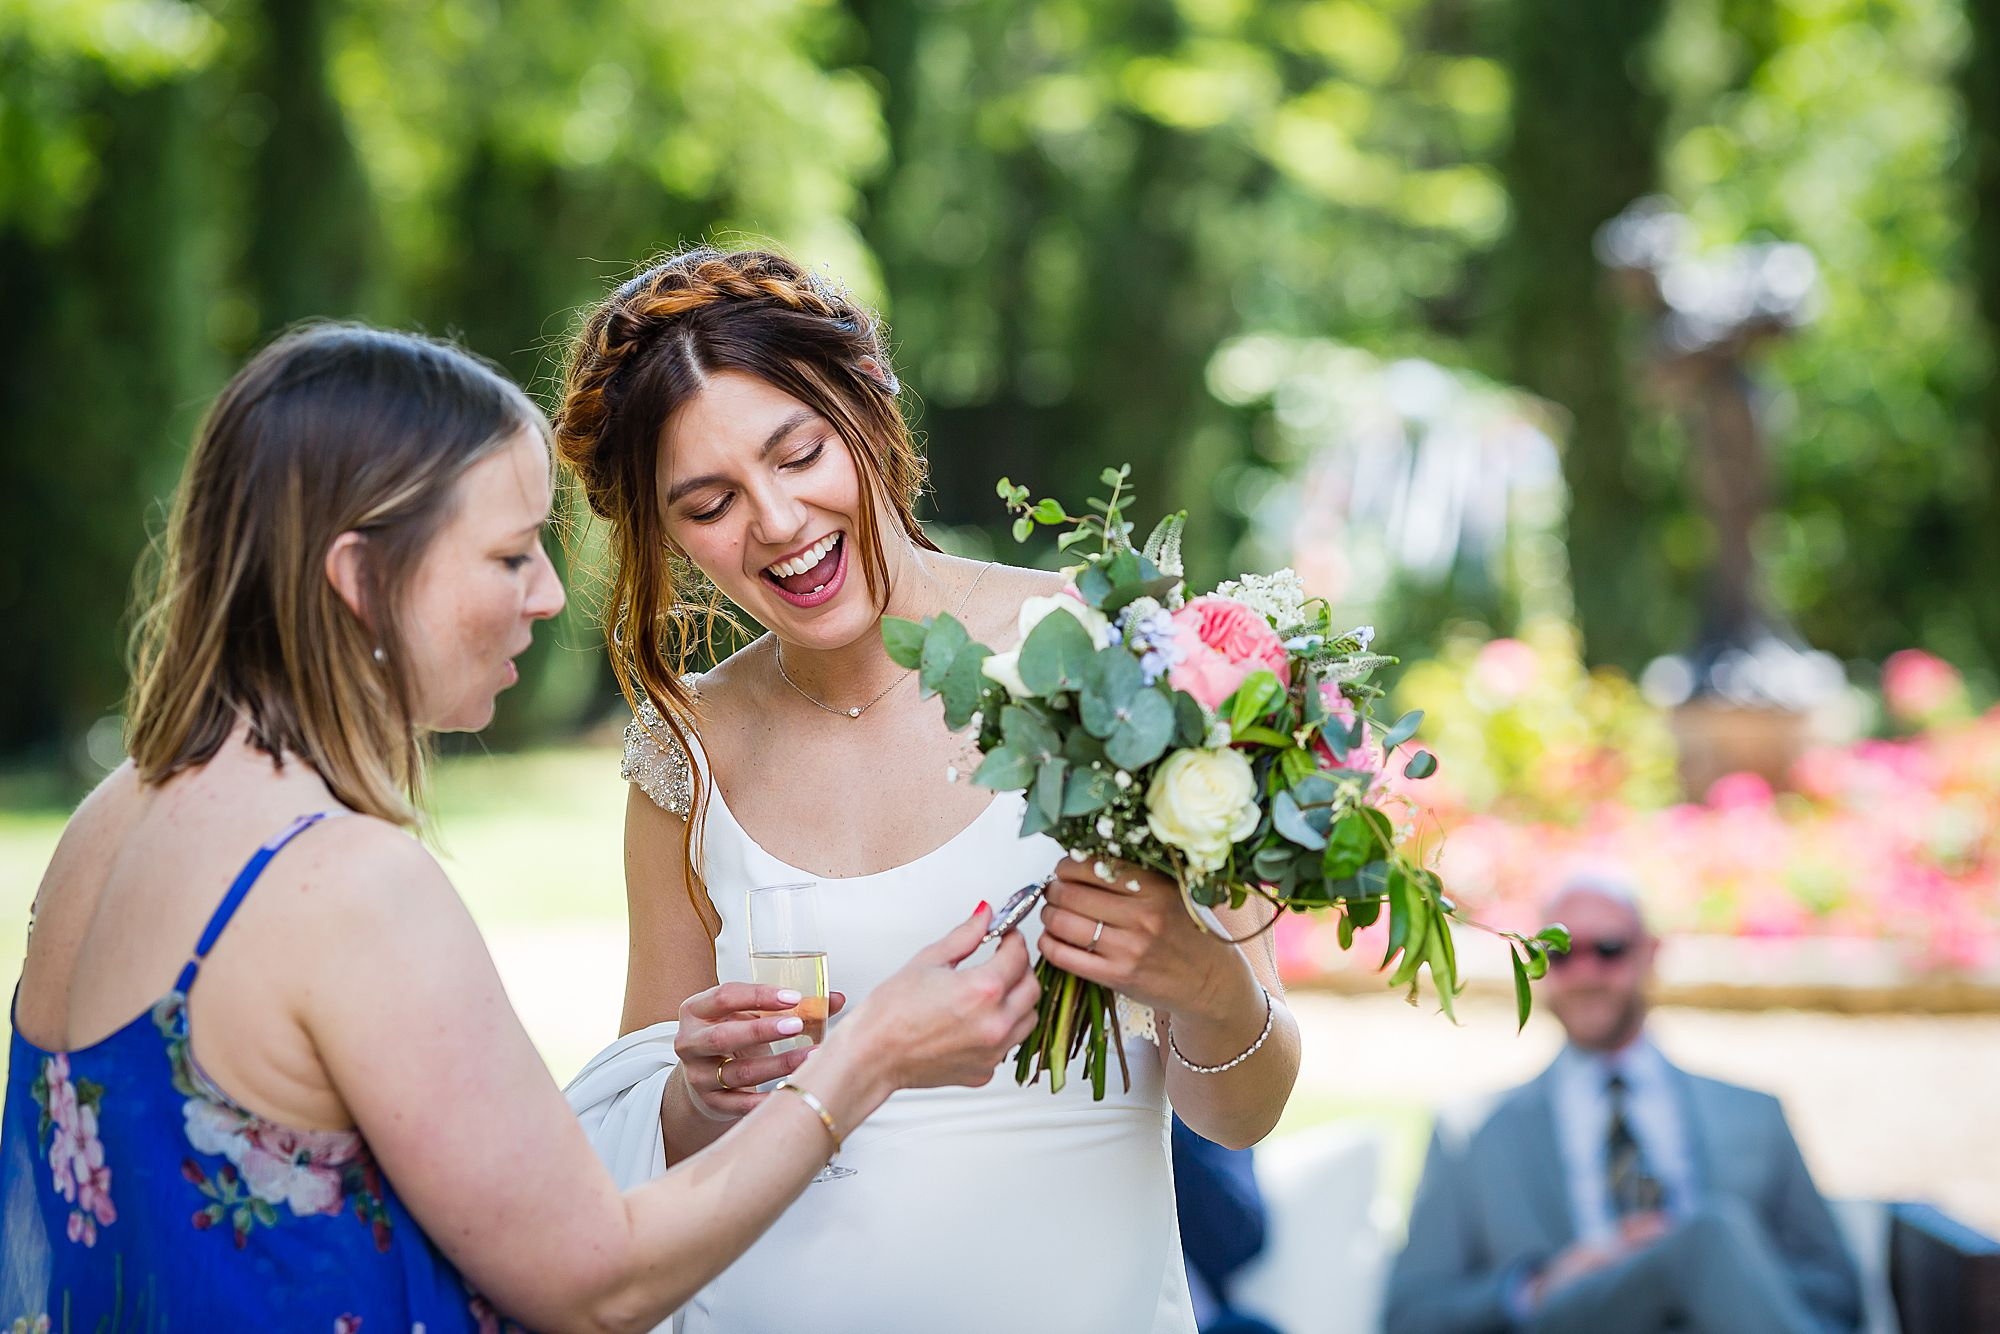 bride shares a locket on her bouquet at Chateau Rieutort wedding